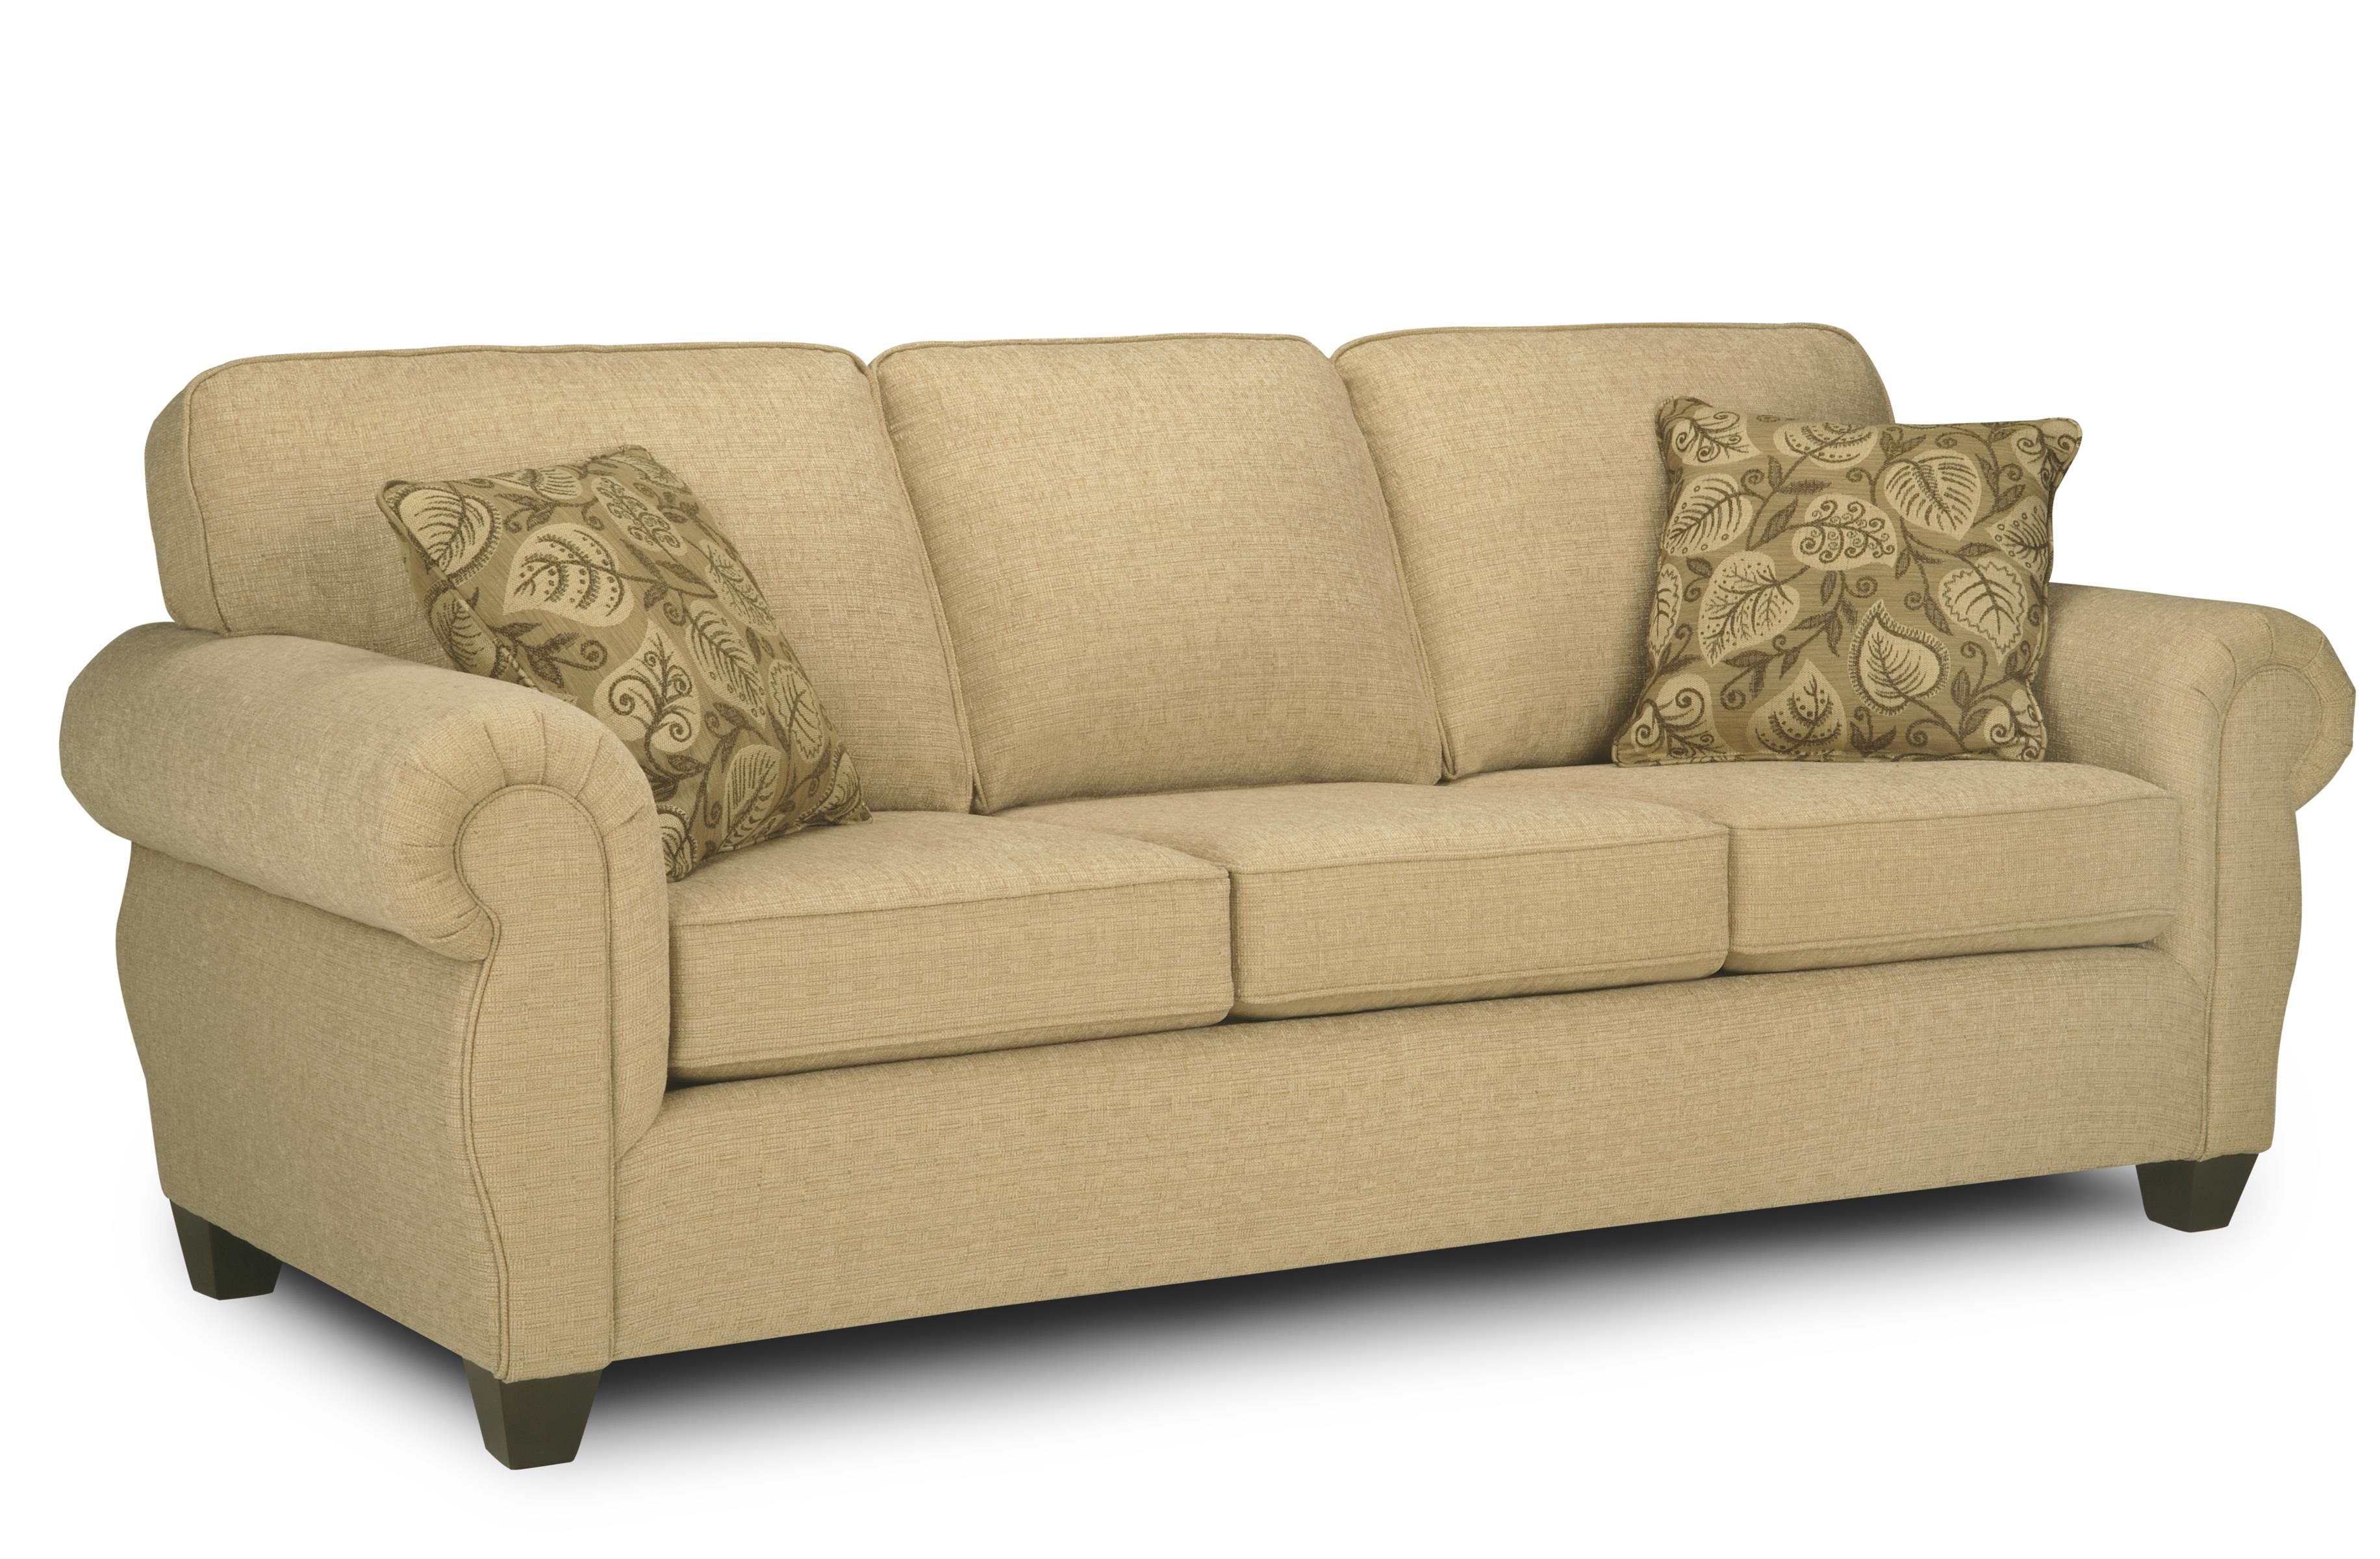 Superstyle 9555 Sofa Transitional Sofa - Item Number: 9555 Sofa